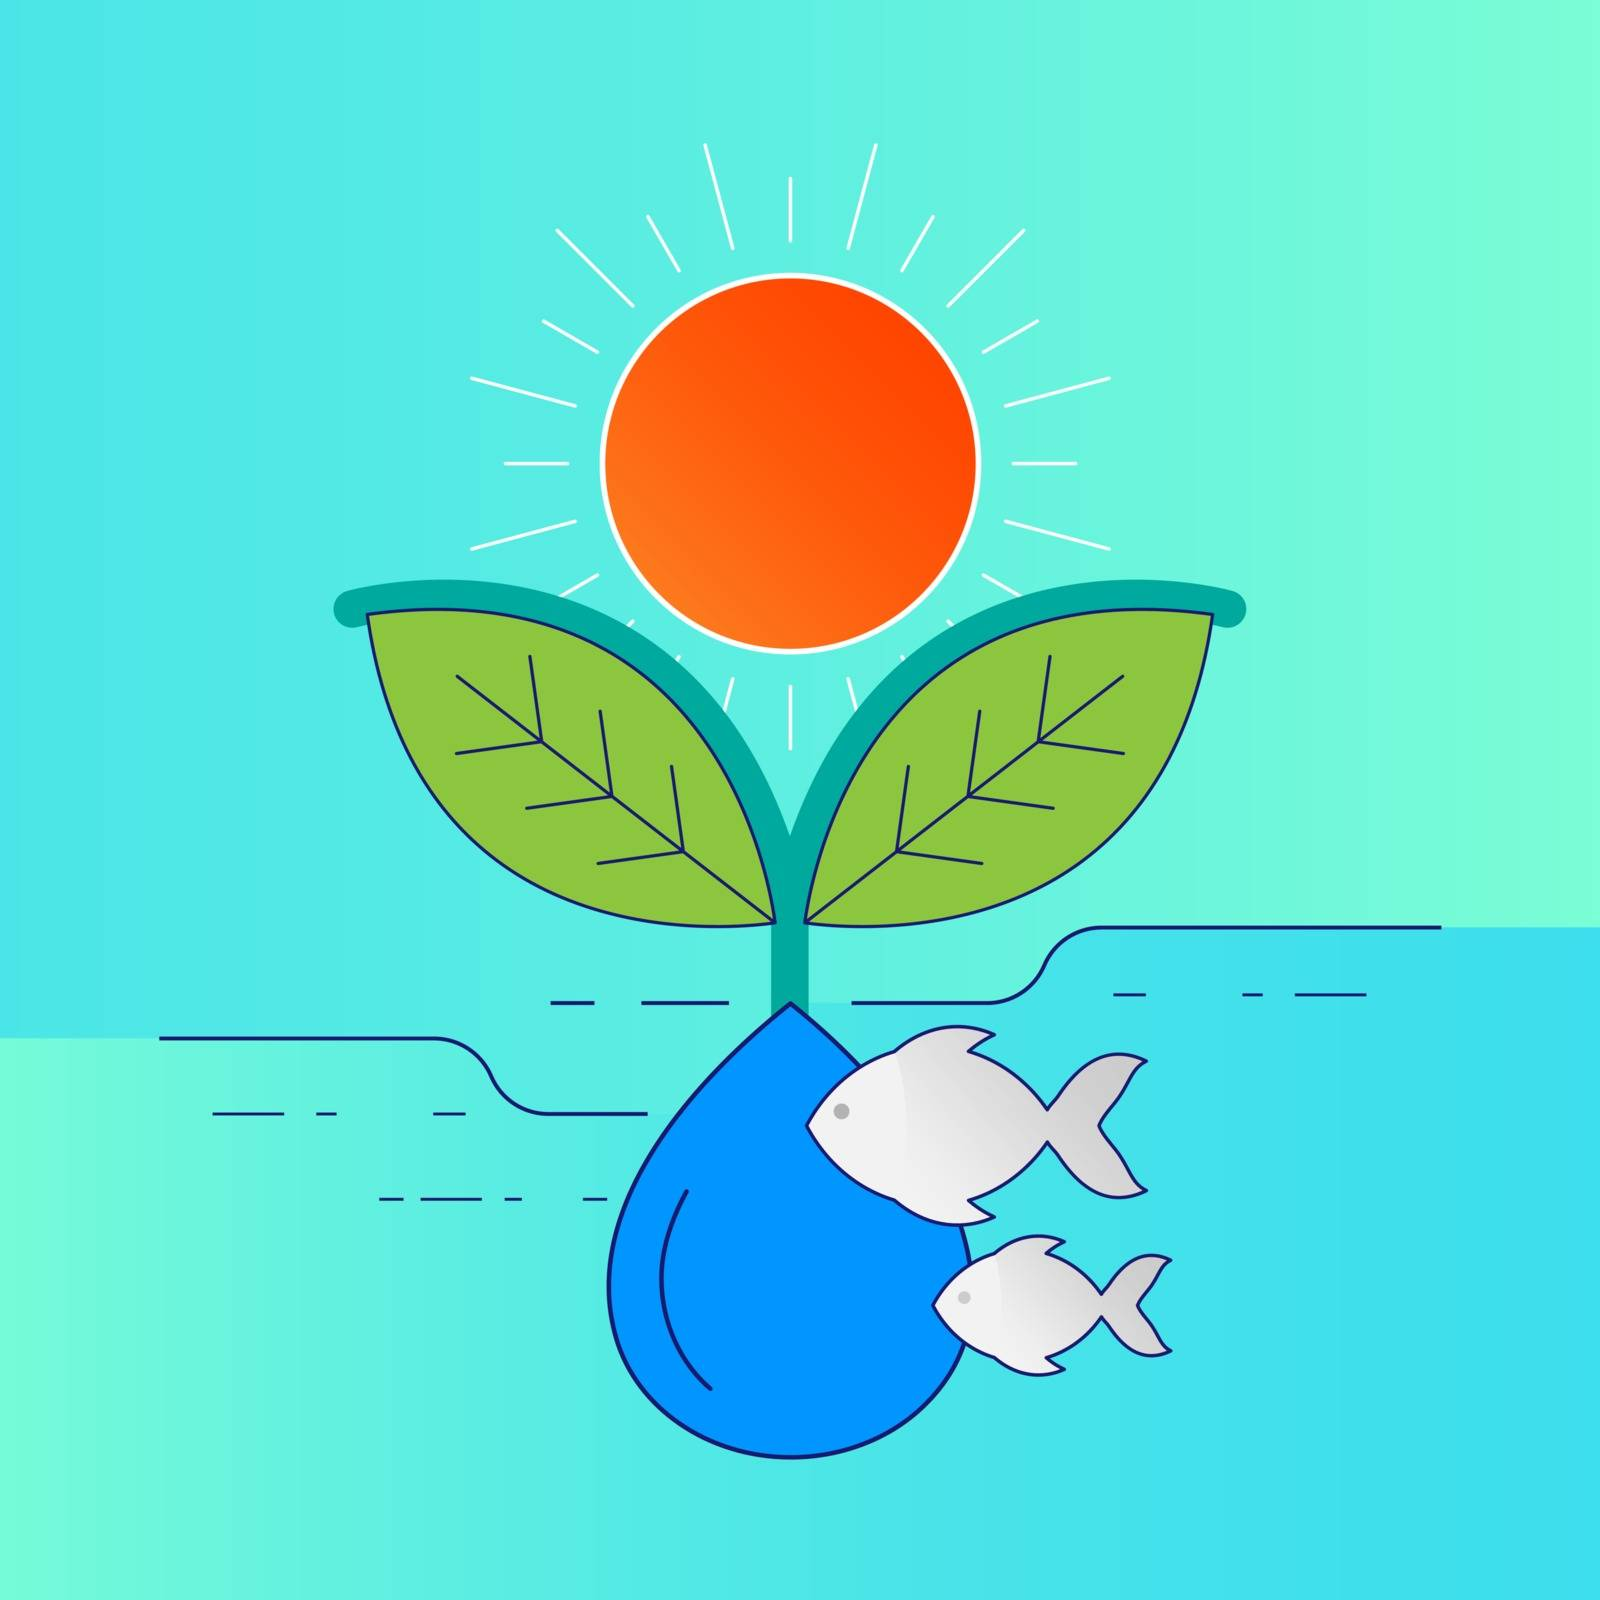 Sunlight,plant,animal and water. Environmental relevance concept. Vector illustration outline flat design style.